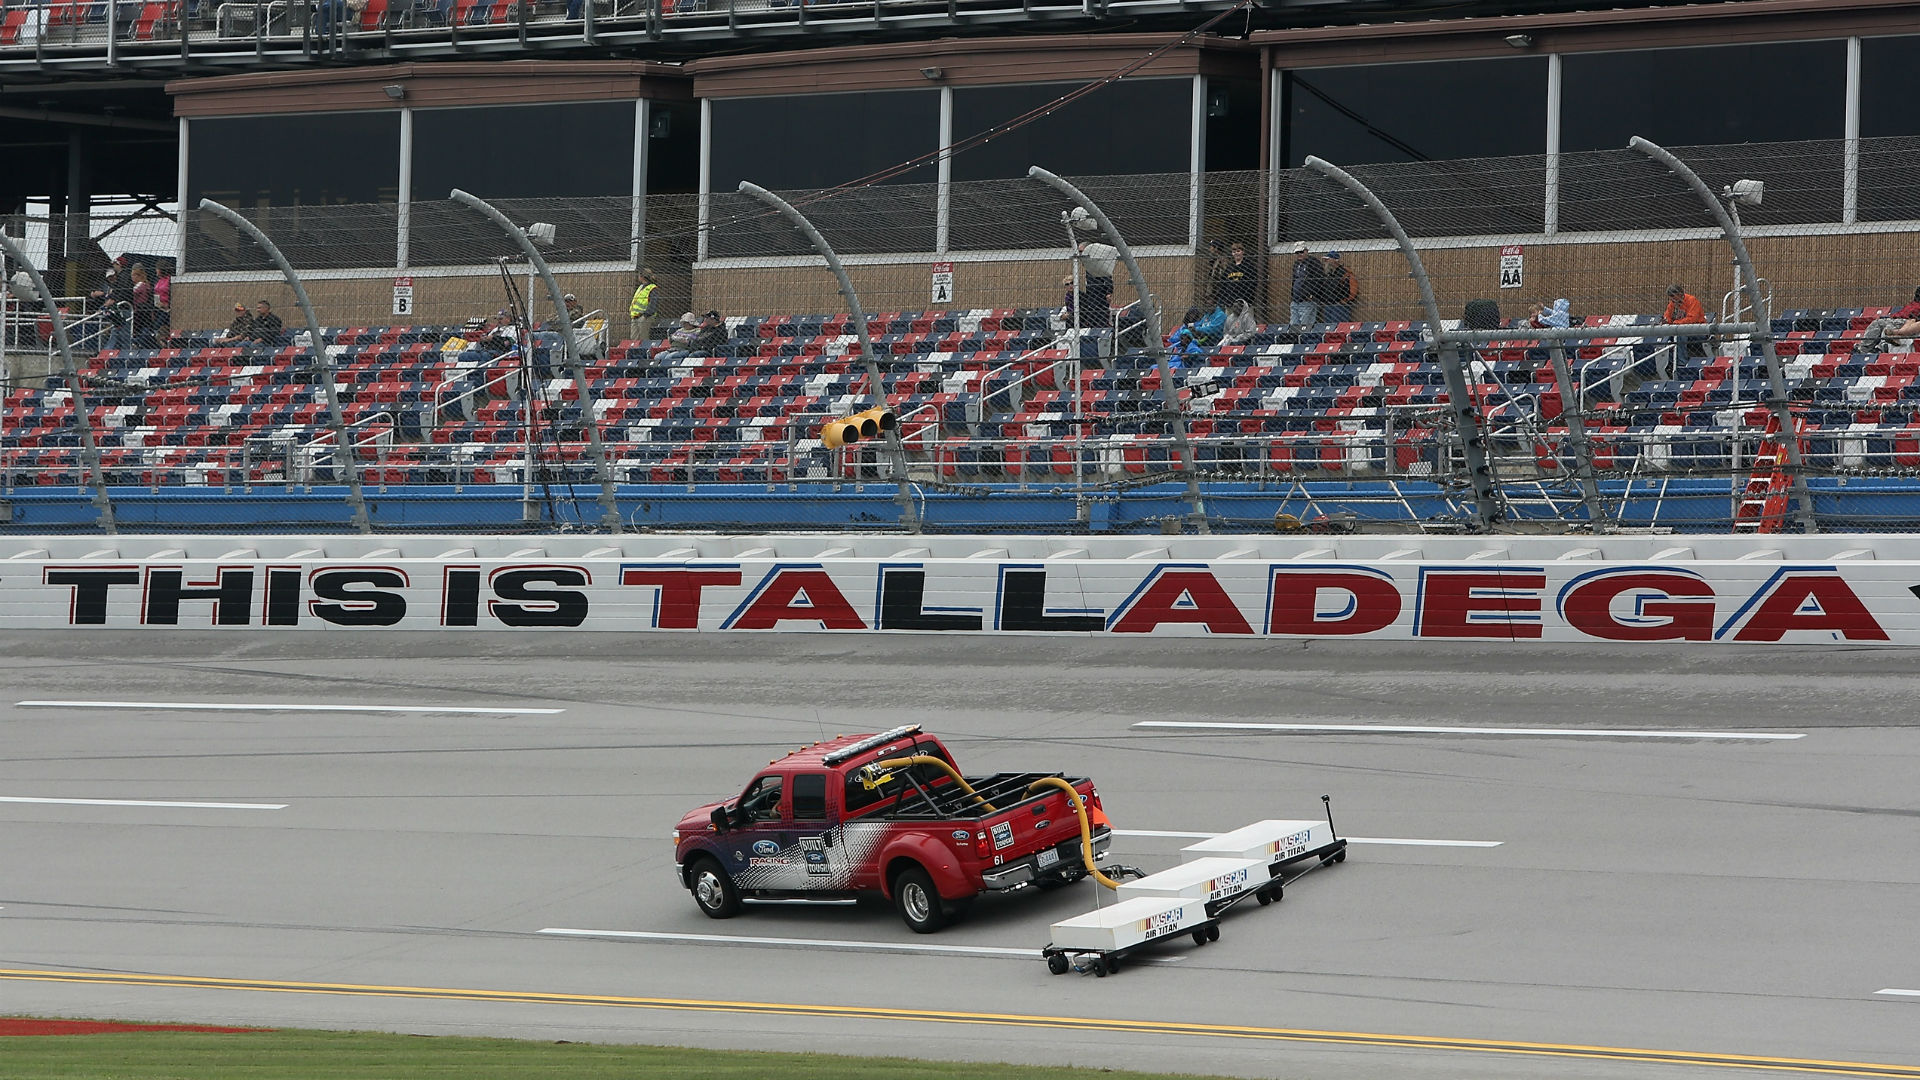 NASCAR race weather: Will rain in forecast delay the Talladega race?